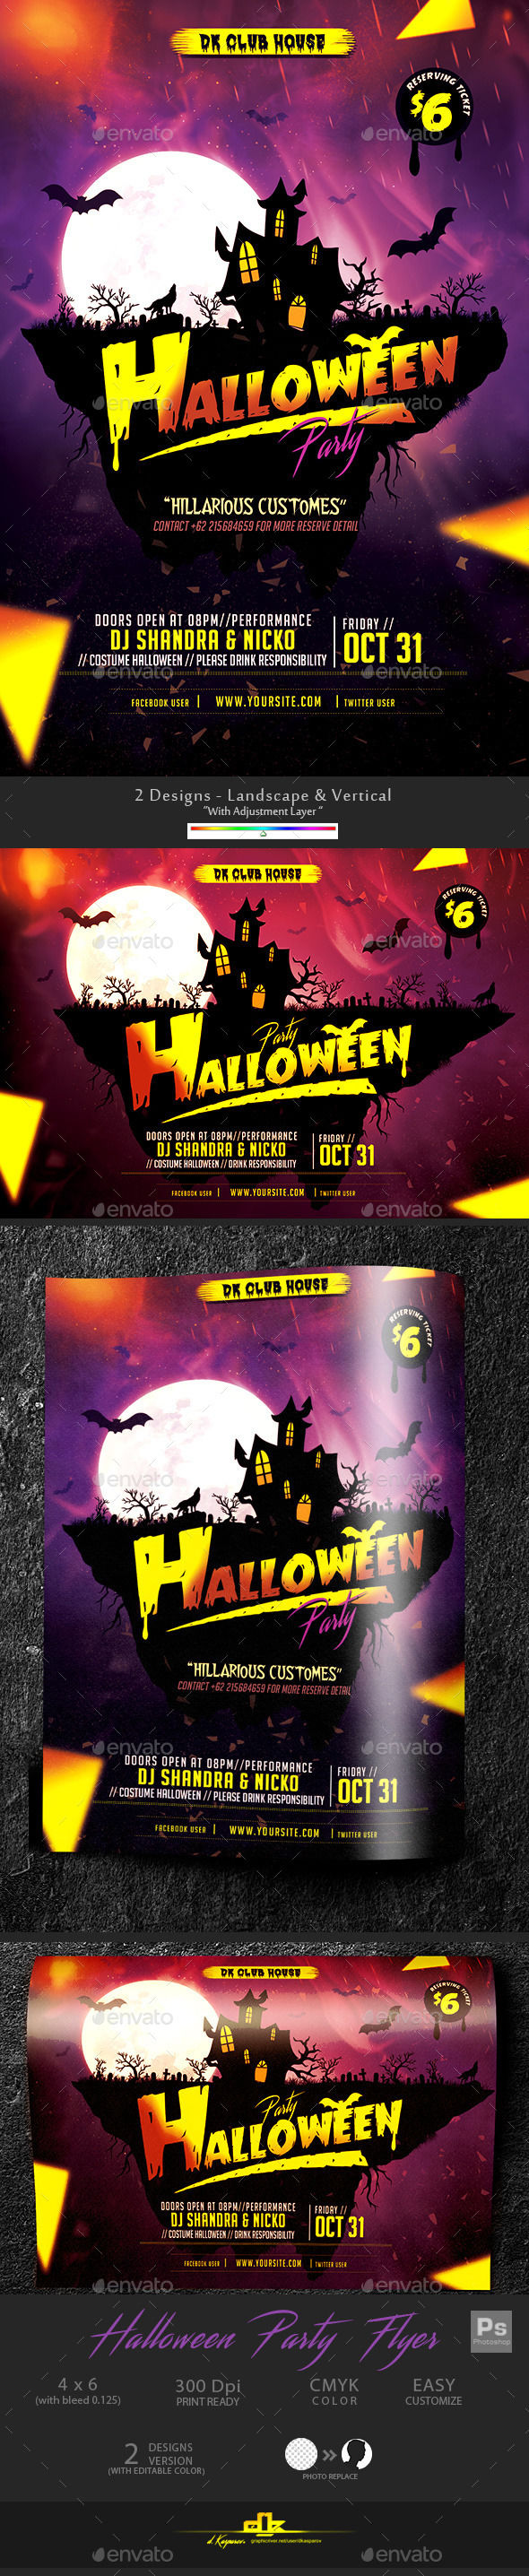 Halloween Flyer Template by Dkasparov (Halloween party flyer)